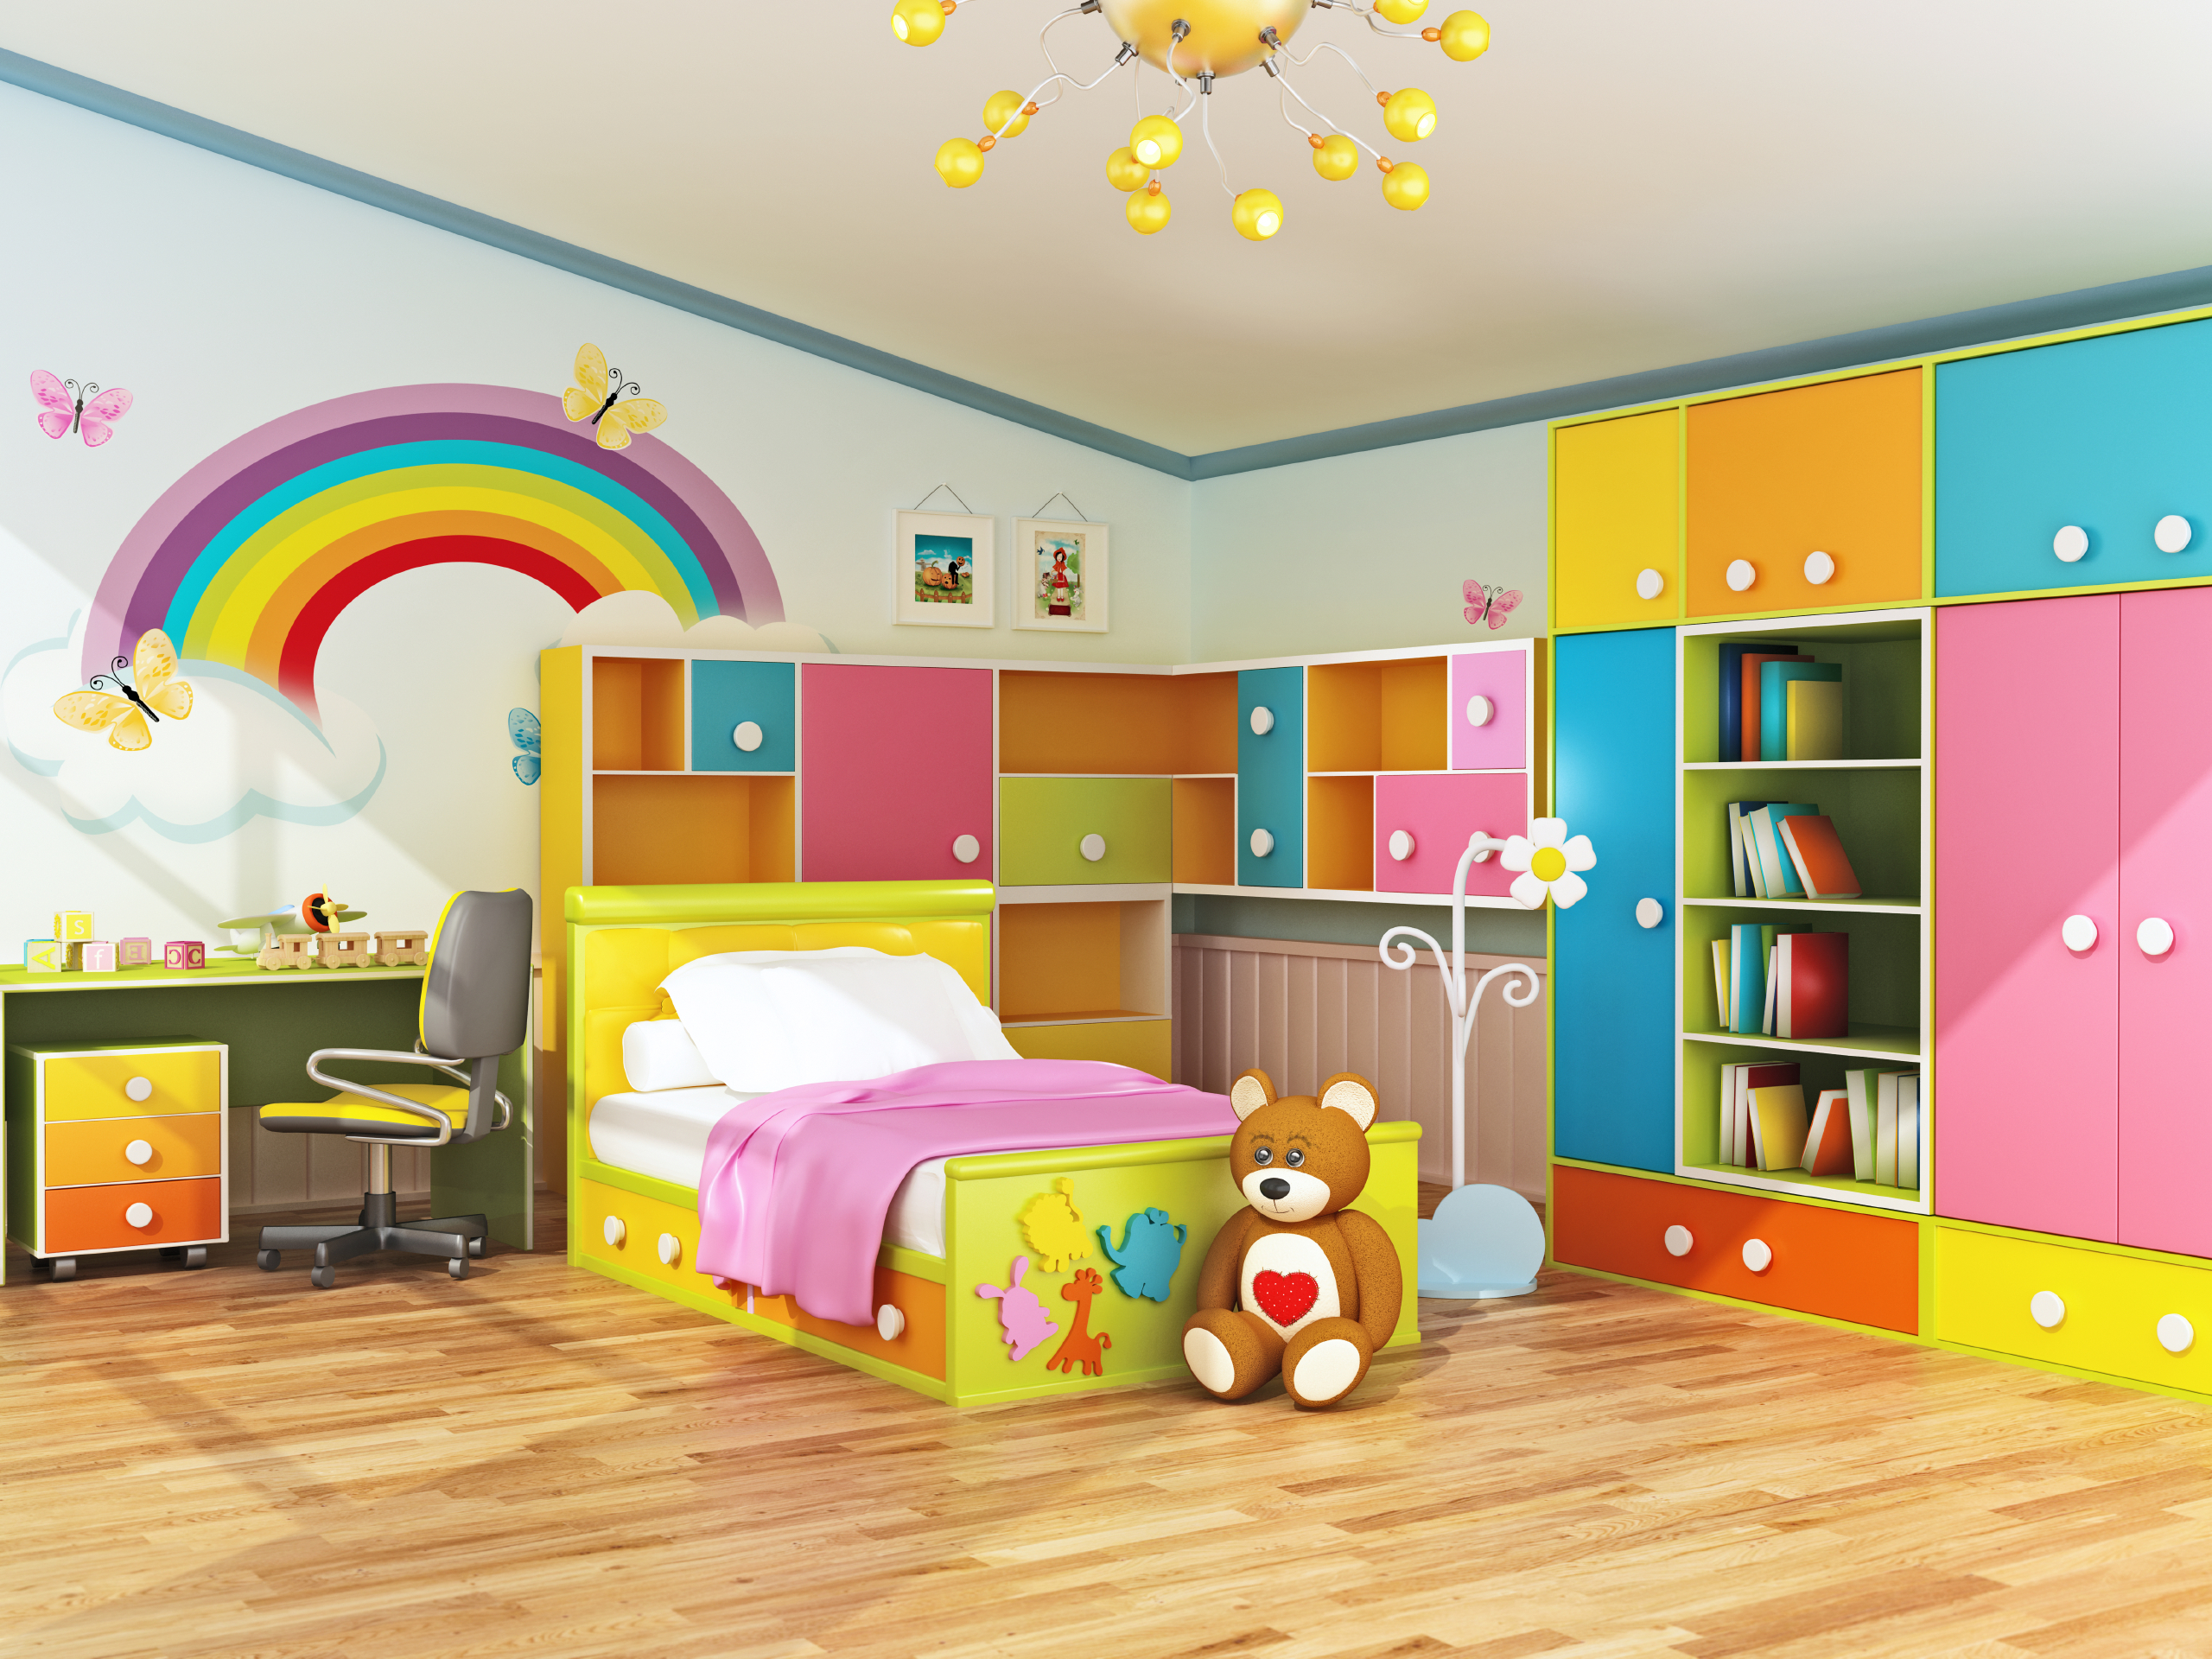 Plan Ahead When Decorating Kids' Bedrooms | RISMedia's ...